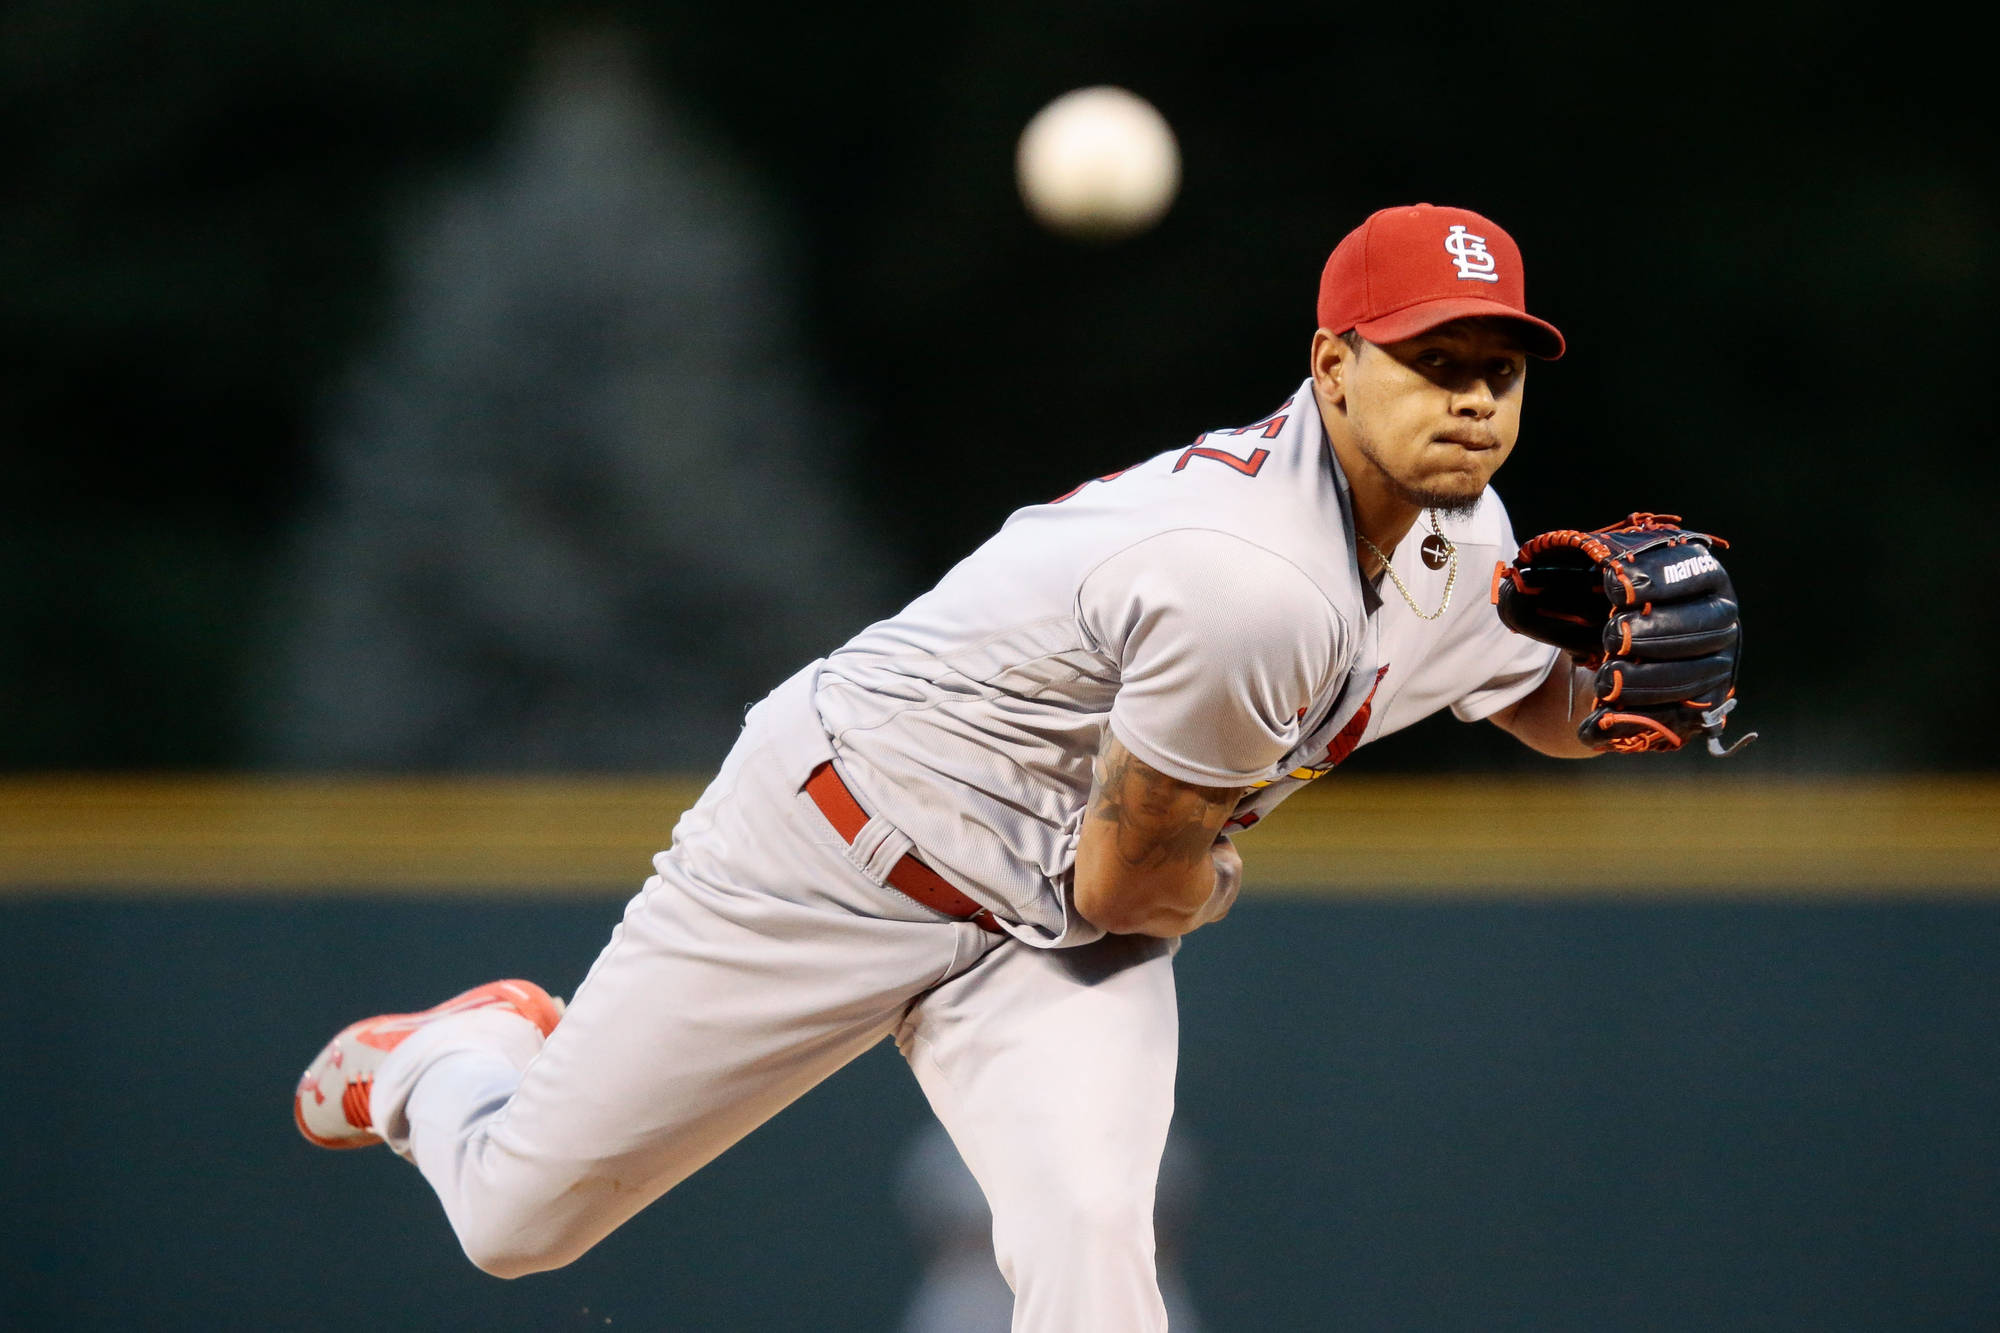 Carlos's Cardinals: Martinez, Cards agree on 5 year extension